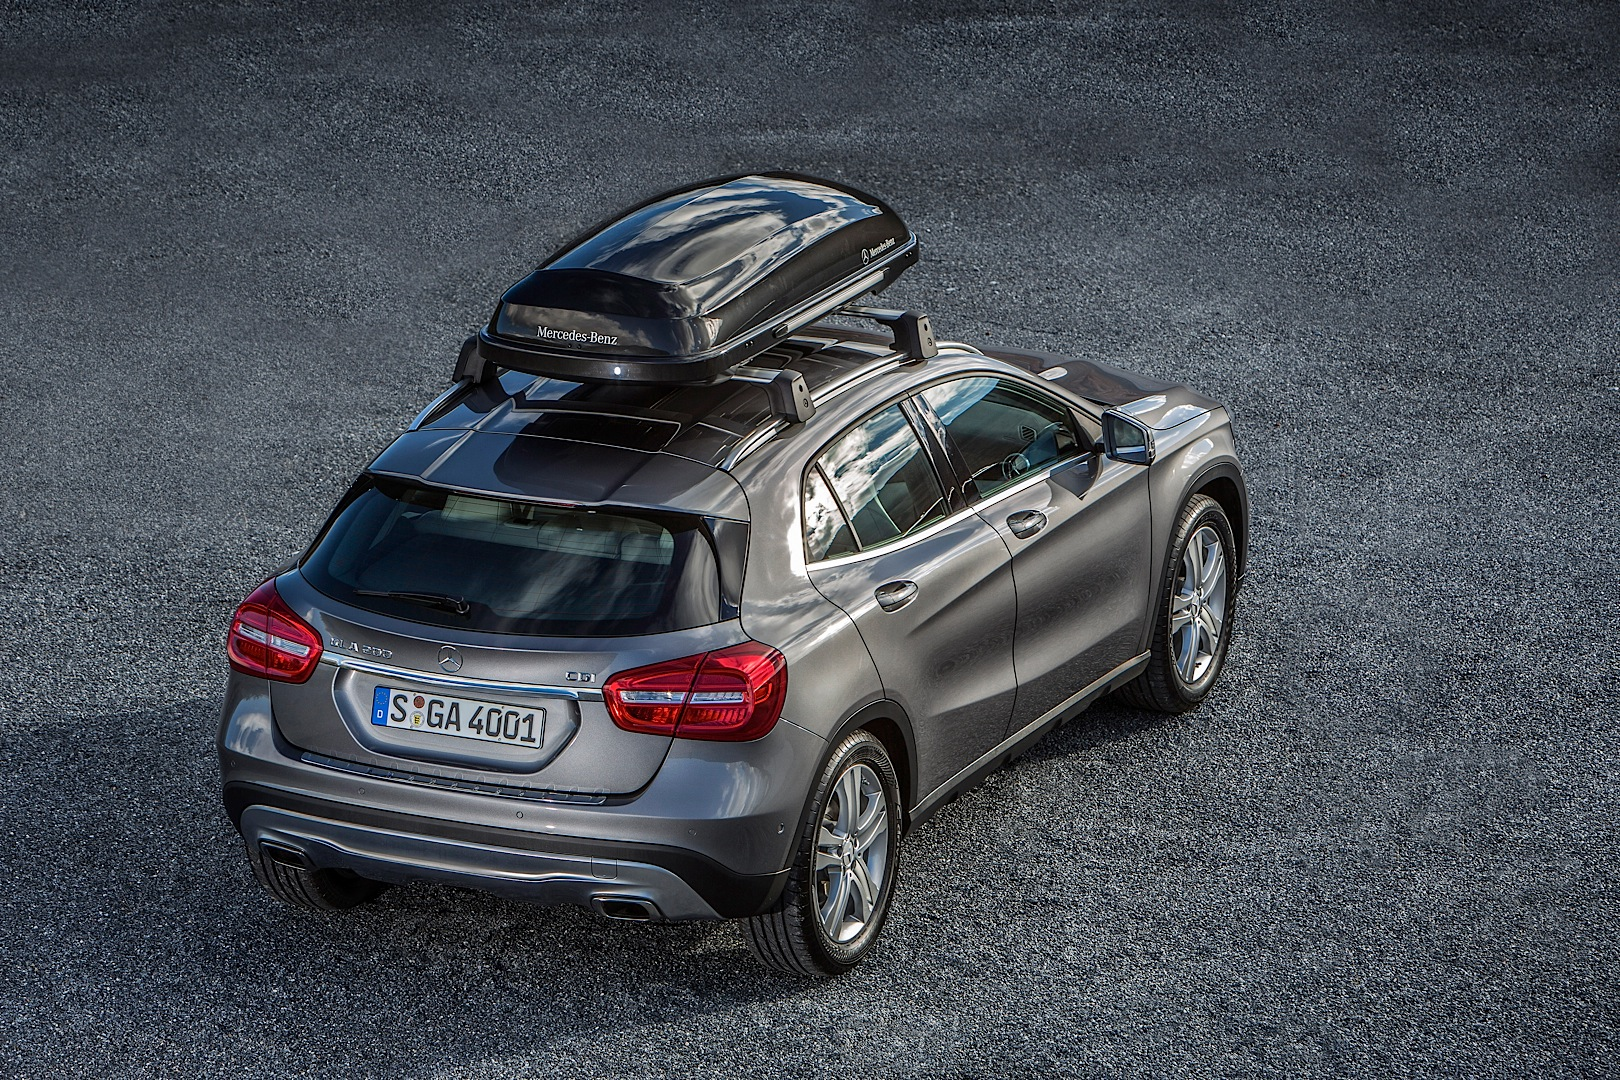 Mercedes benz gla gets new accessories autoevolution for Mercedes benz clothes and accessories